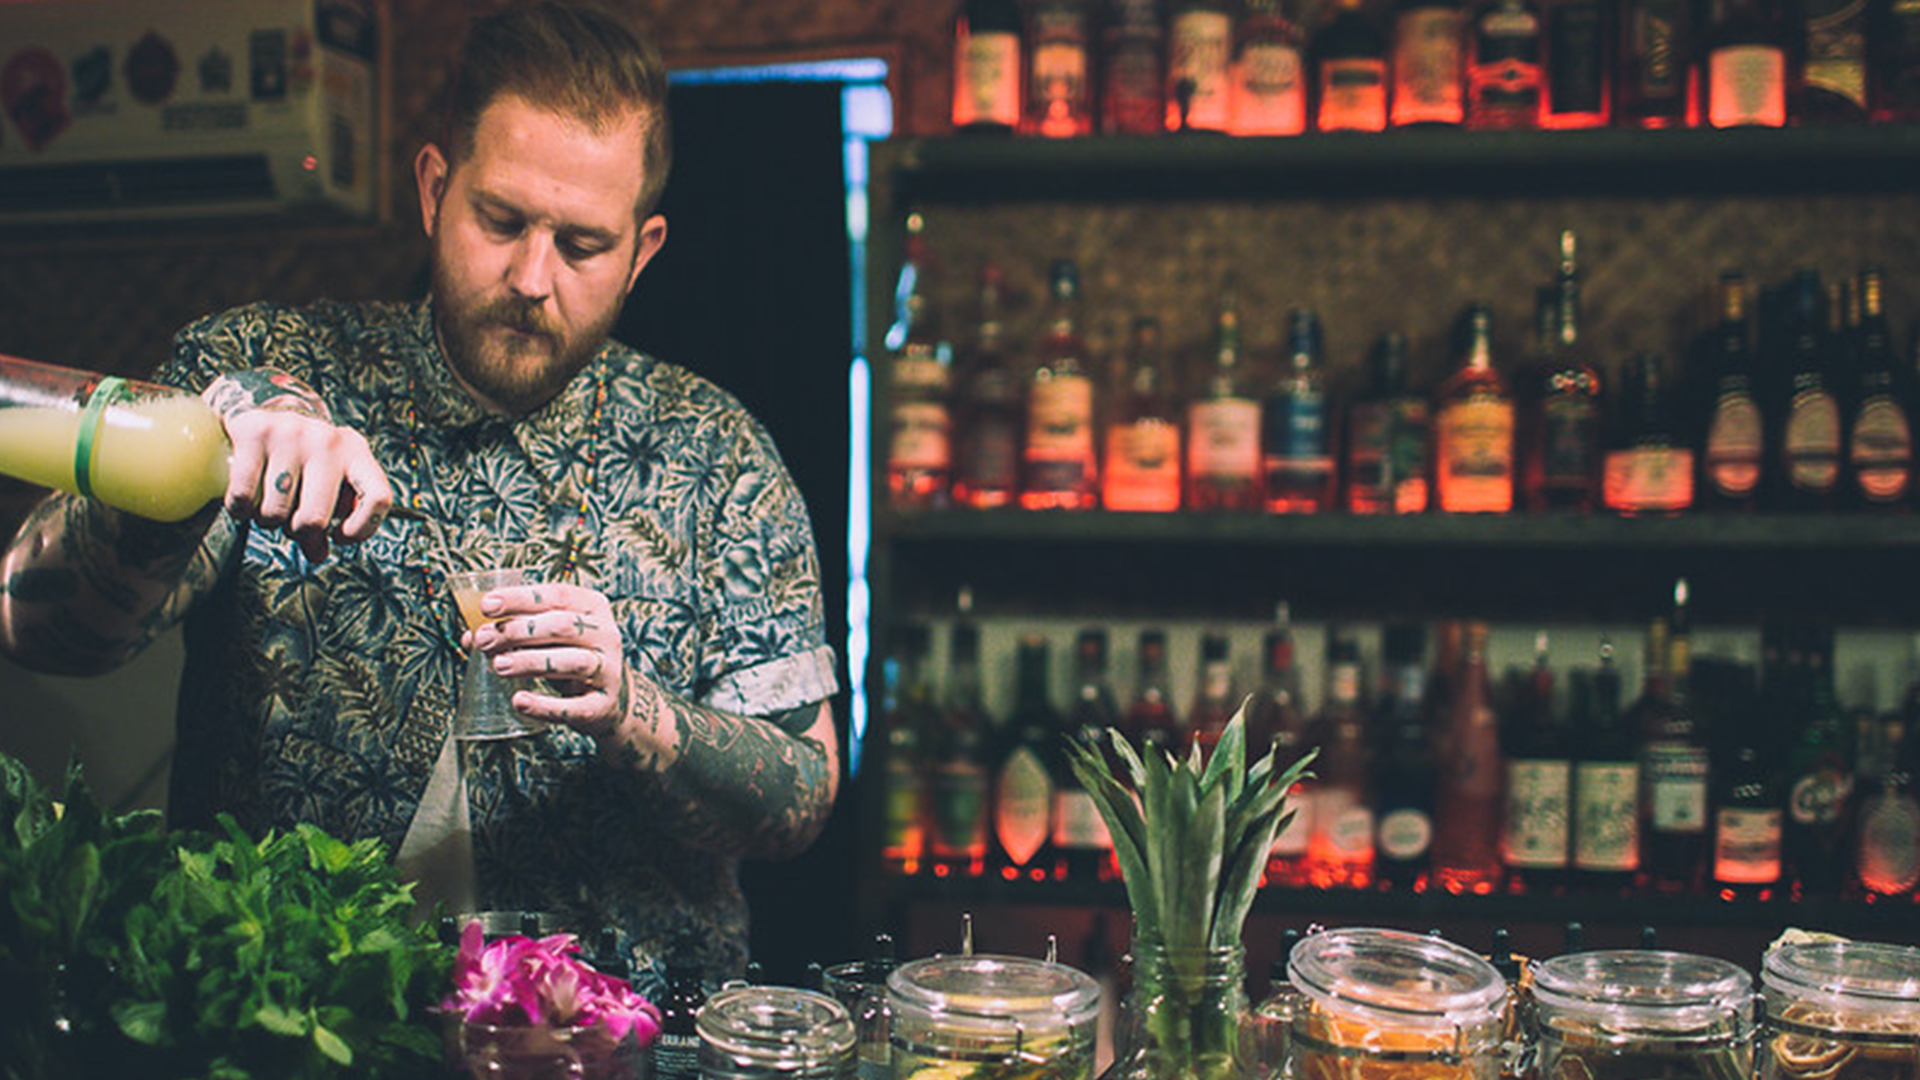 An image of the bartender at Bootlegger Tiki